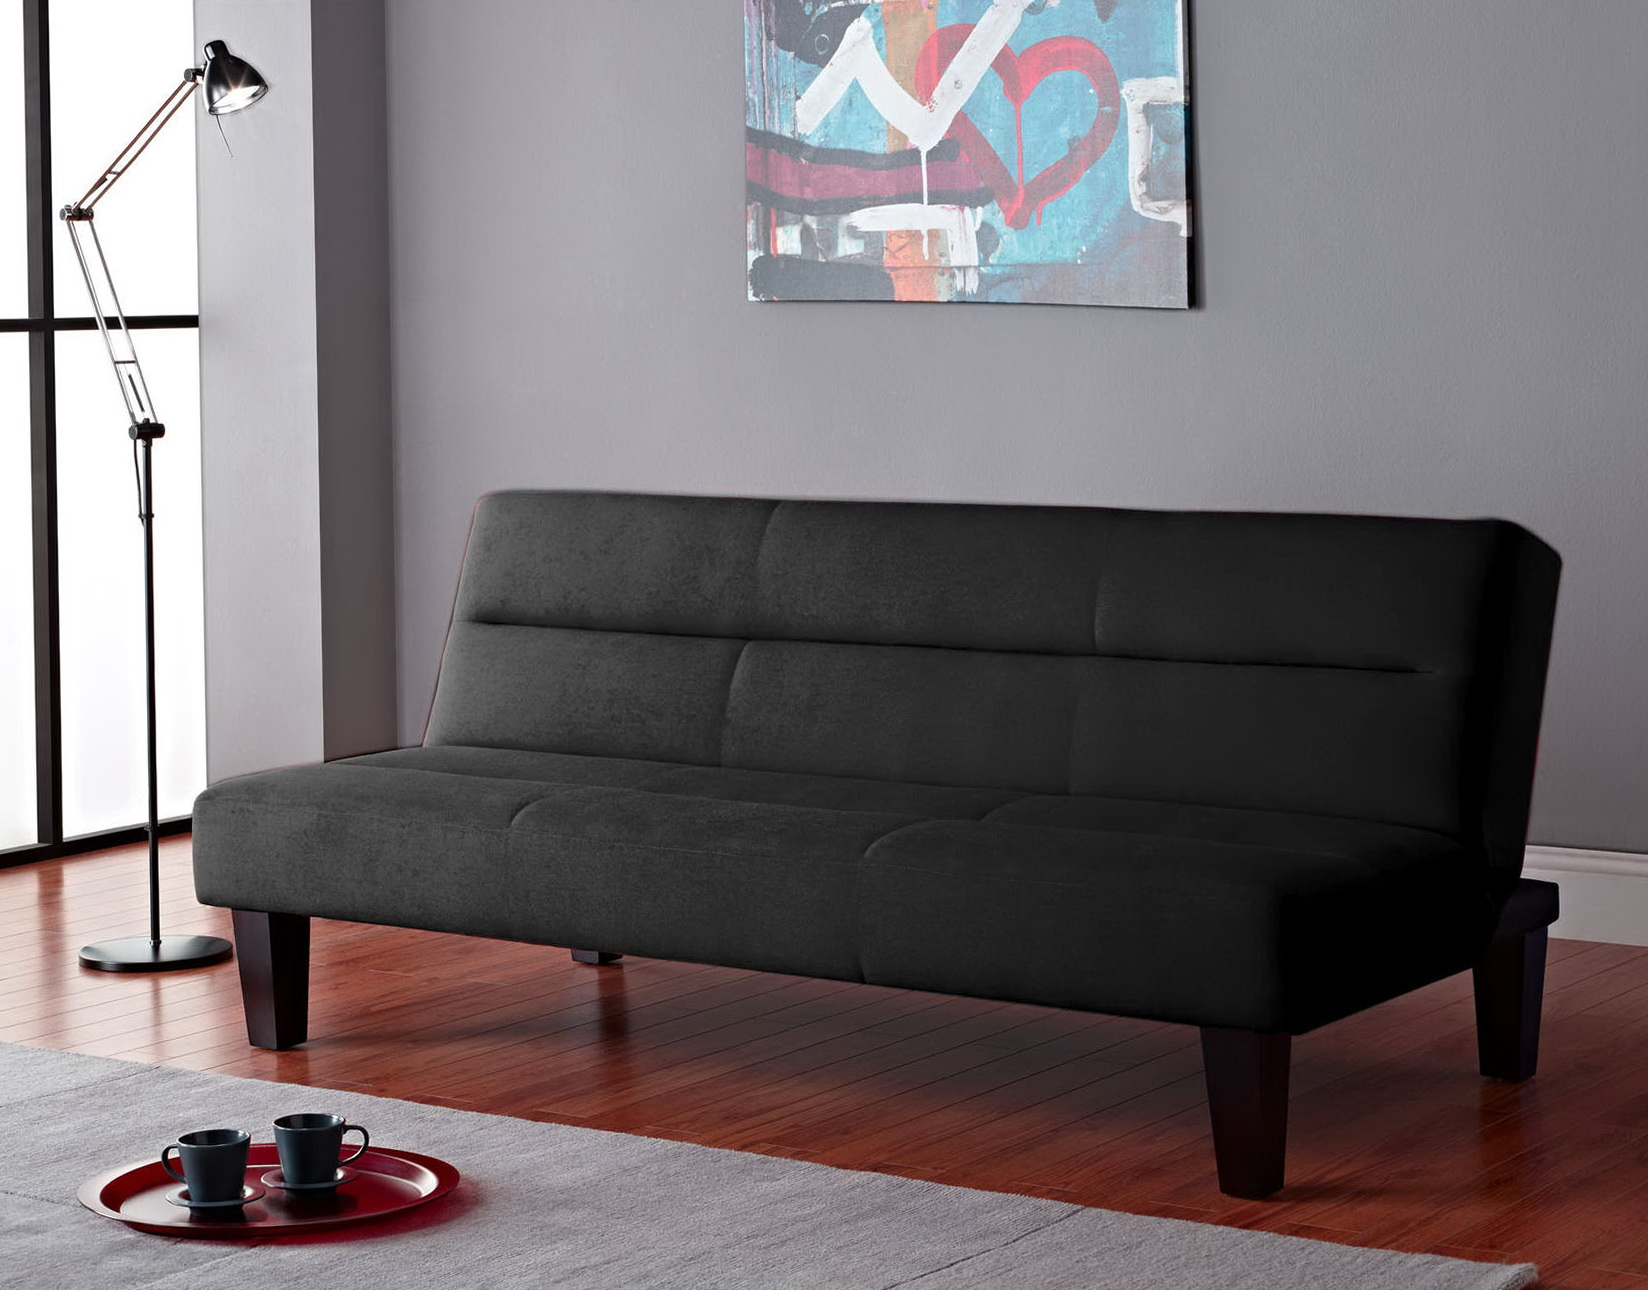 Kebo Futon Sofa Bed Review